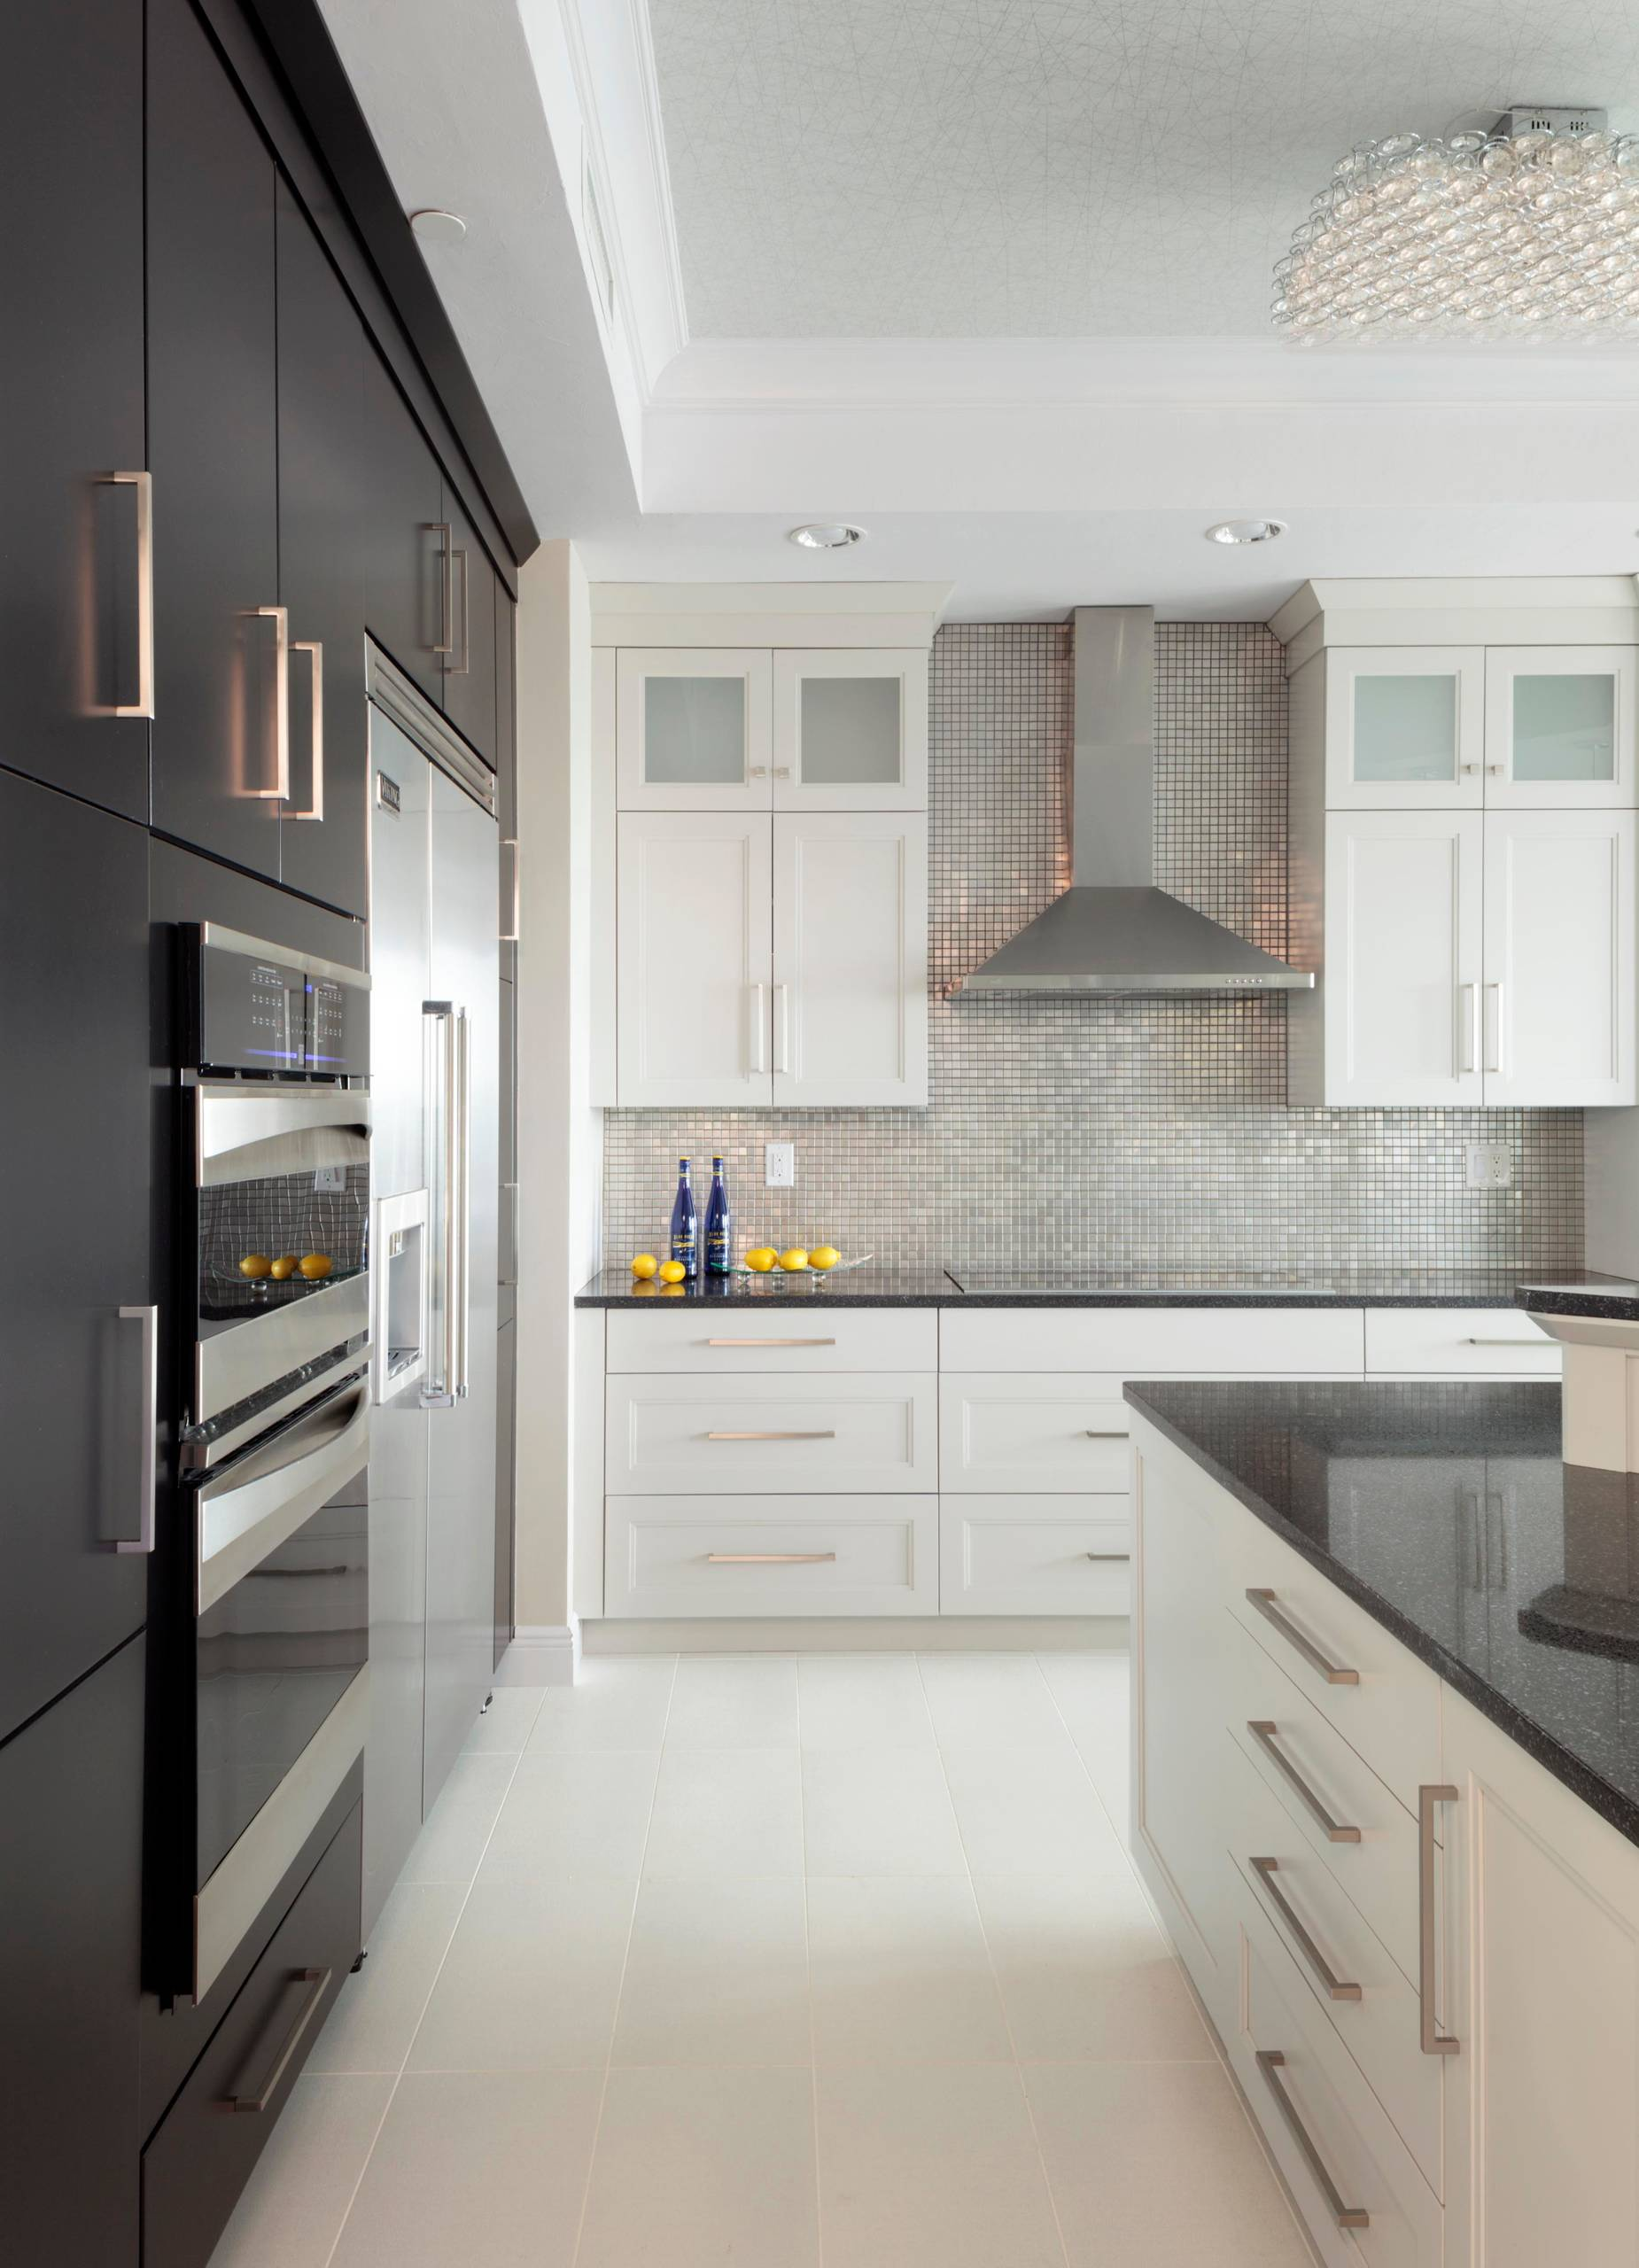 75 Beautiful Kitchen With Mosaic Tile Backsplash Pictures Ideas December 2020 Houzz